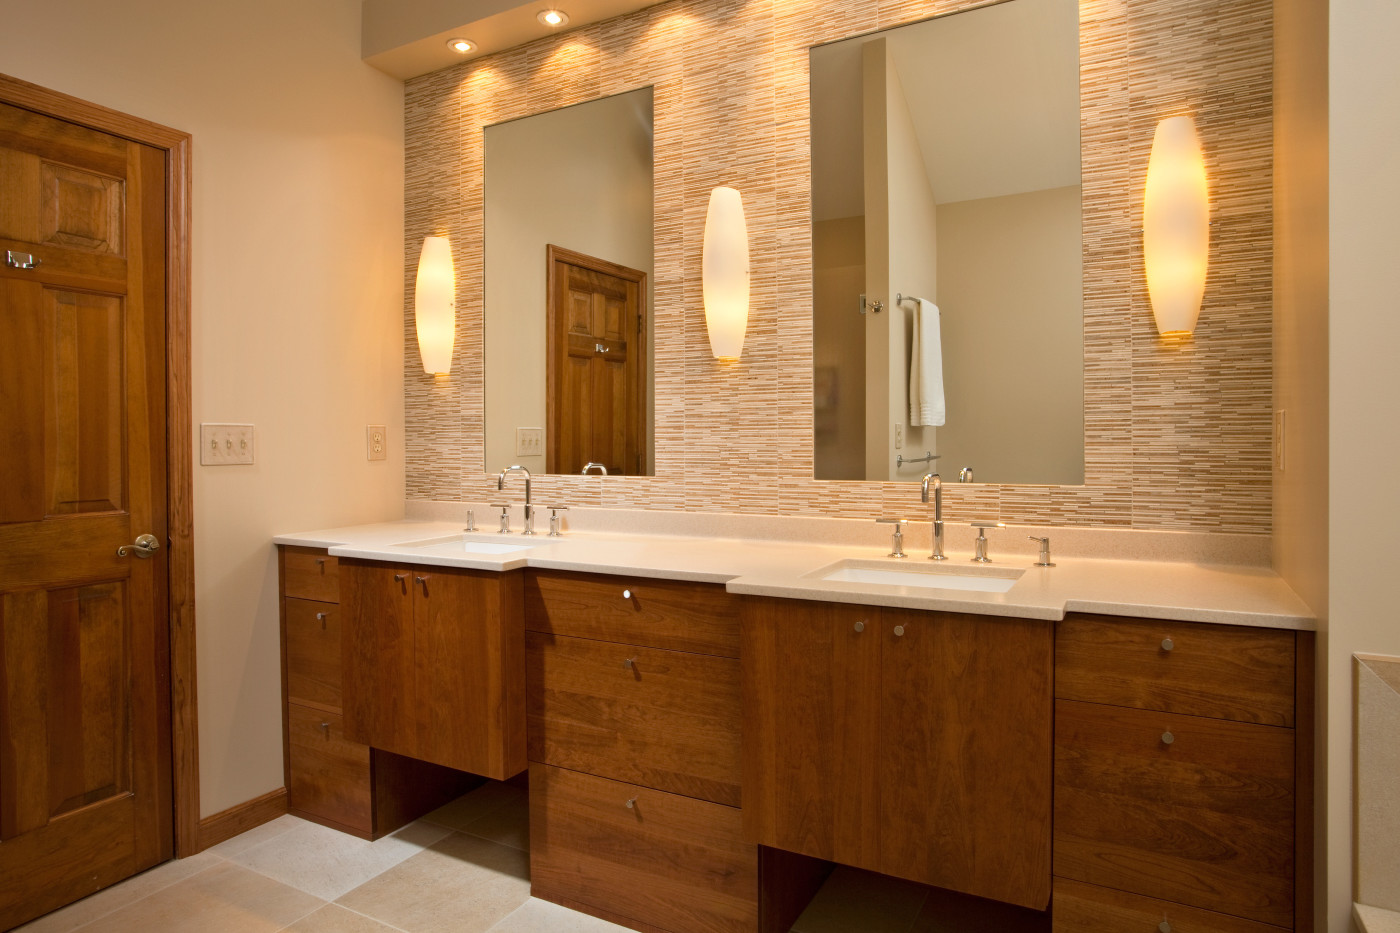 teakwood builders applied long clean lines while designing the remodel for both the kitchen and bath